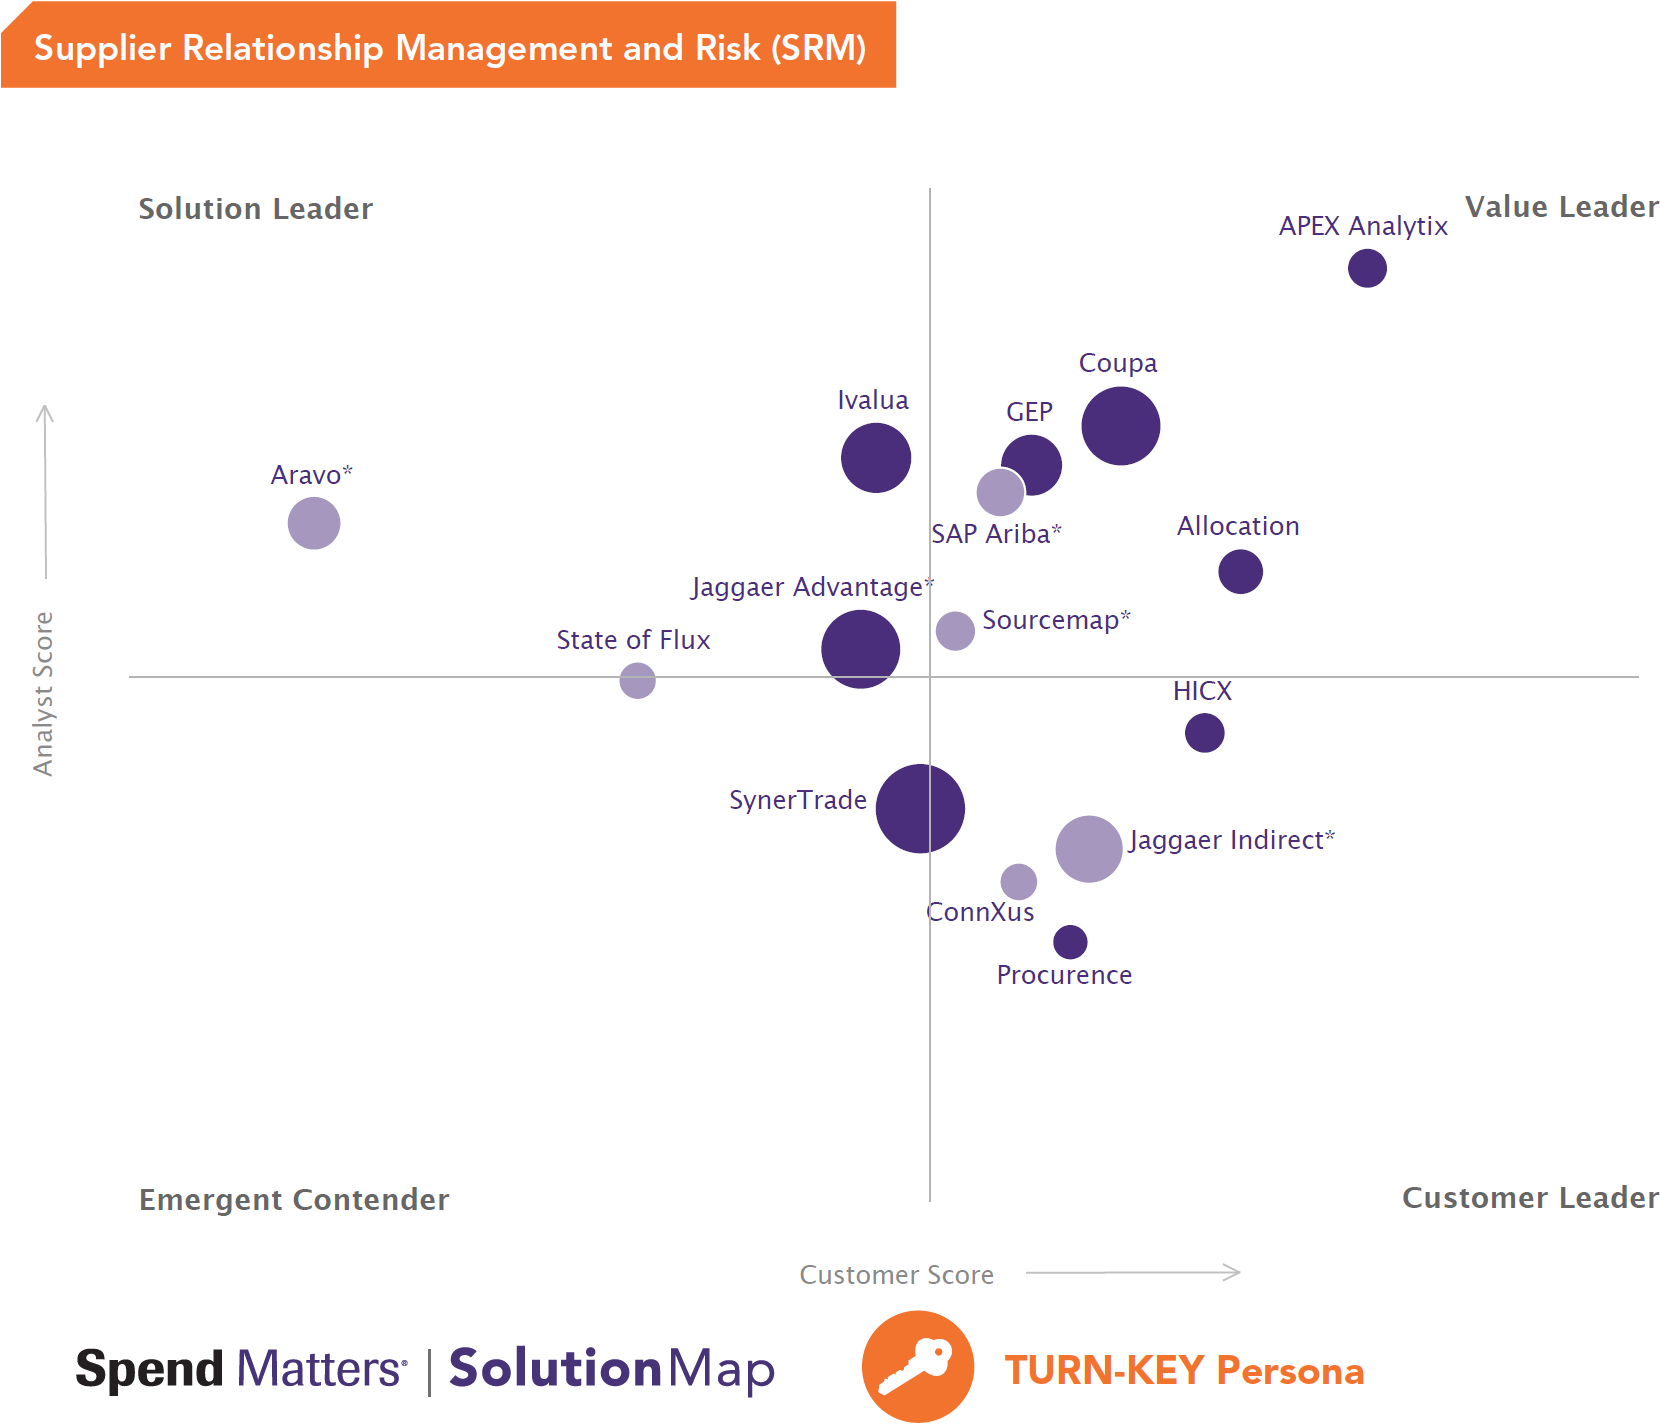 Spend Matters Supplier Relationship Management and Risk SolutionMap